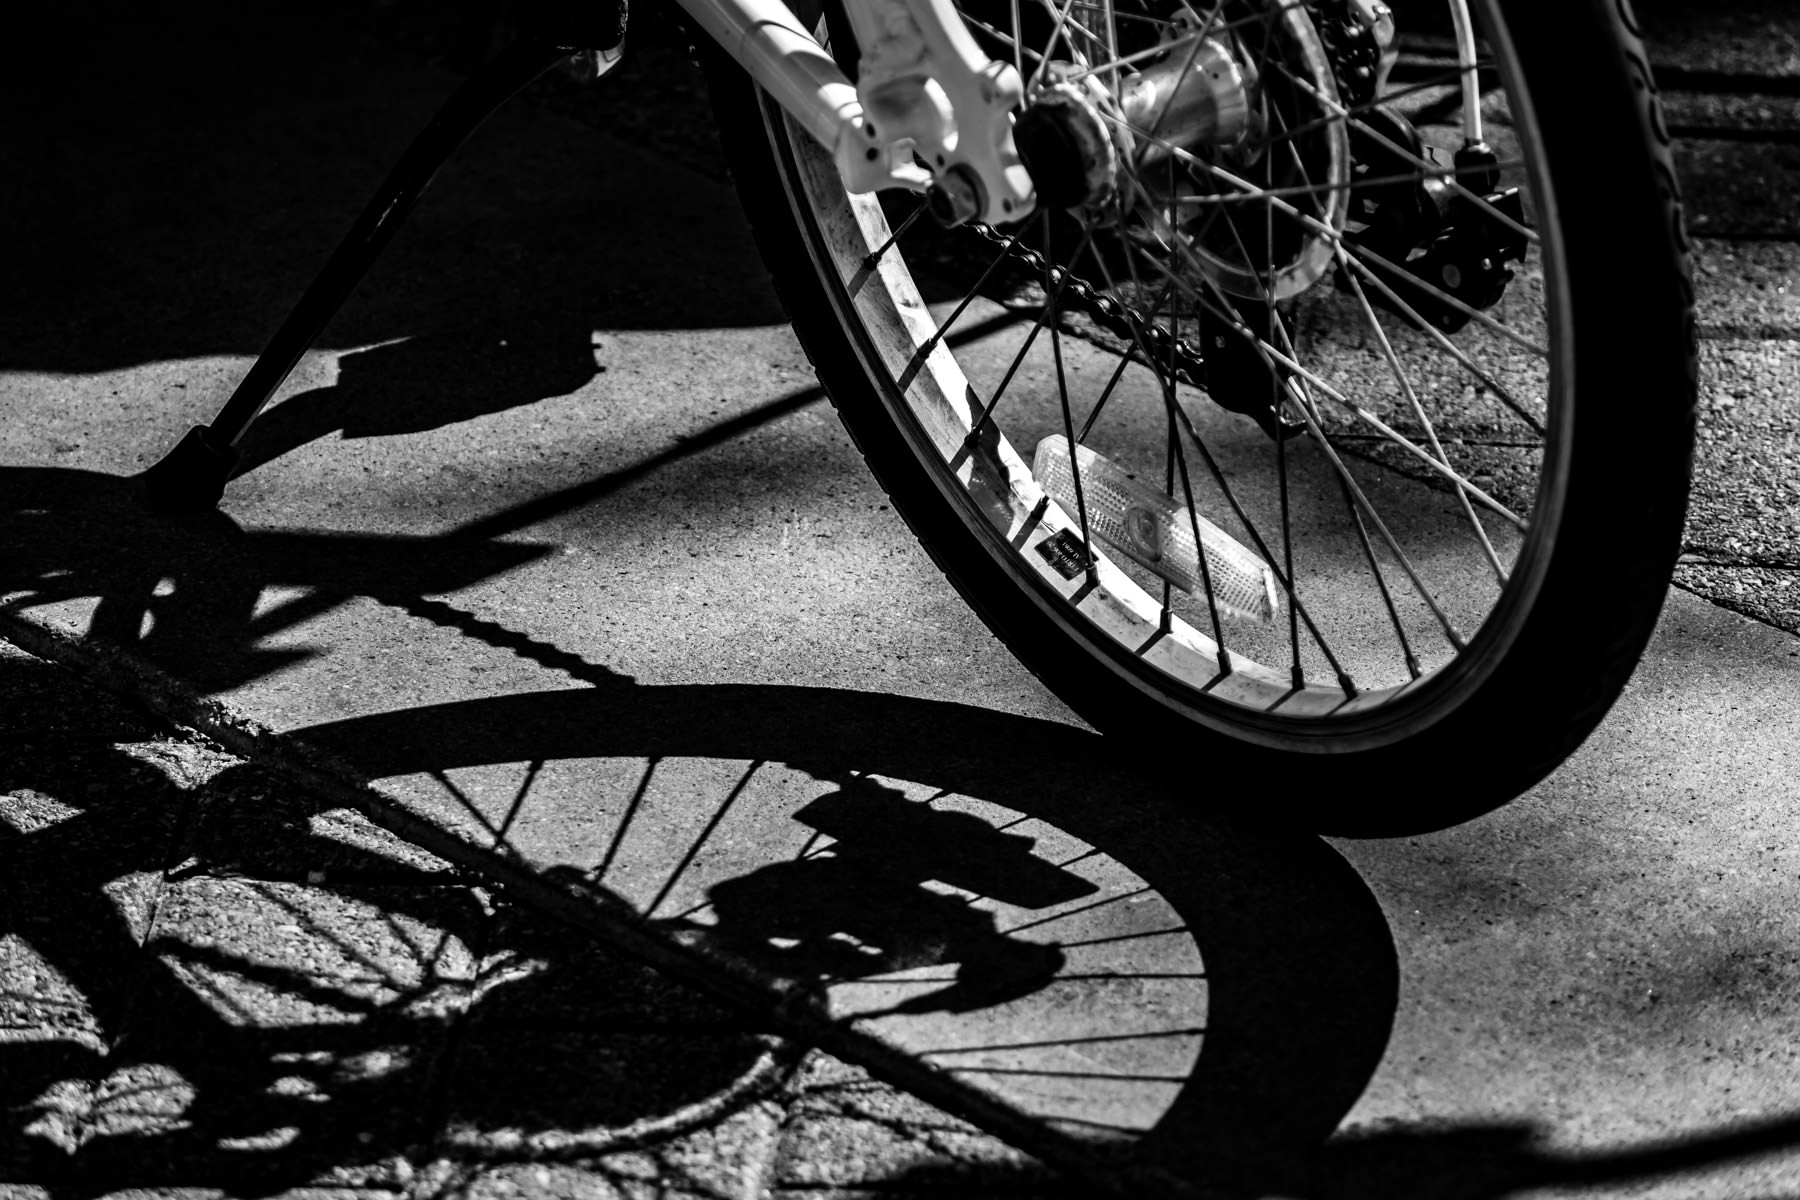 A bicycle's wheel casts a shadow in Downtown Dallas, Texas.